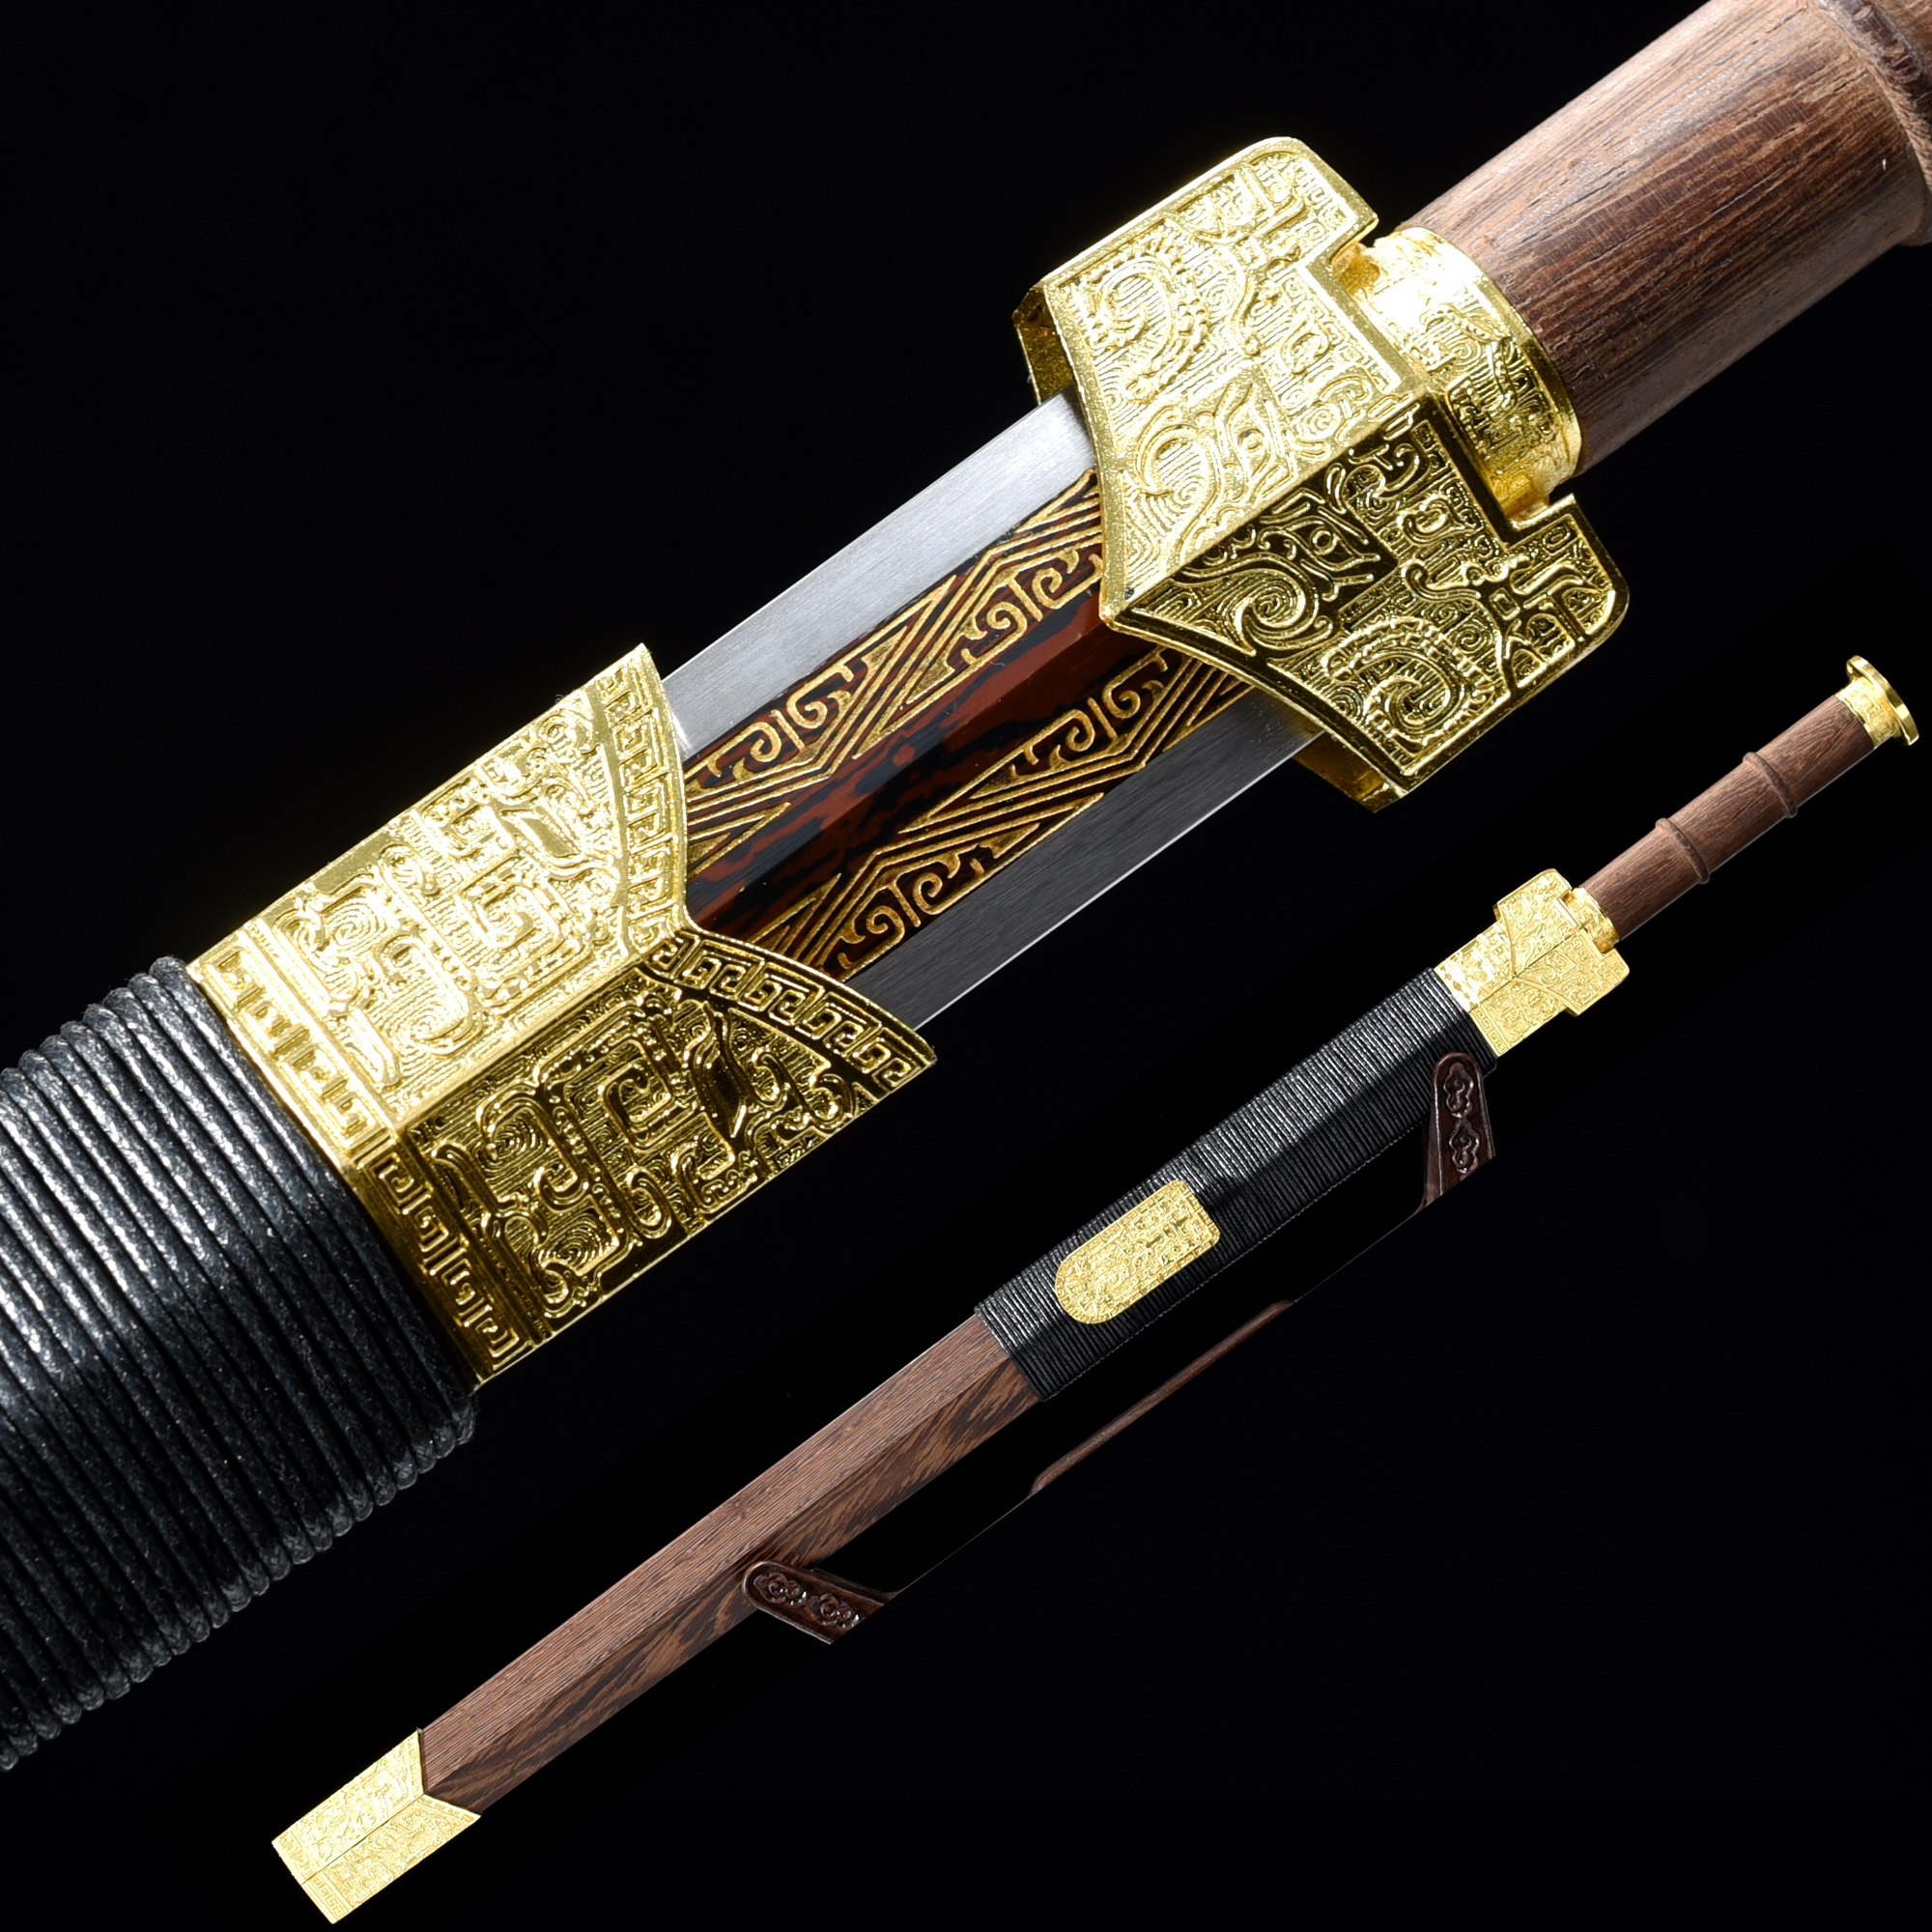 Handmade Pattern Steel Red Branding Blade Chinese Han Dynasty Sword With Rosewood Scabbard